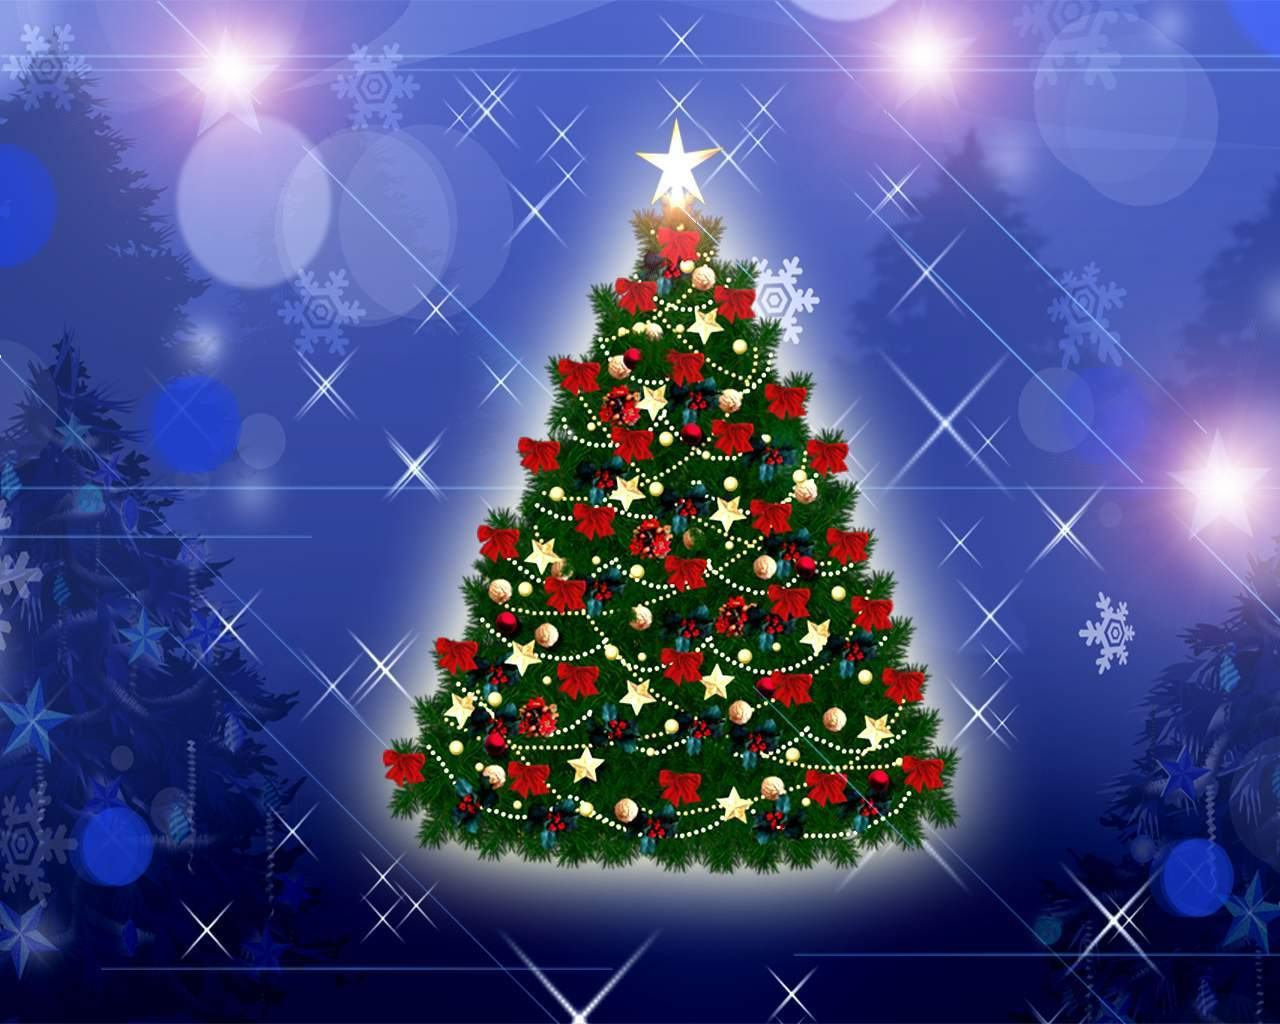 Animated Christmas Wallpapers For Desktop 1280x1024